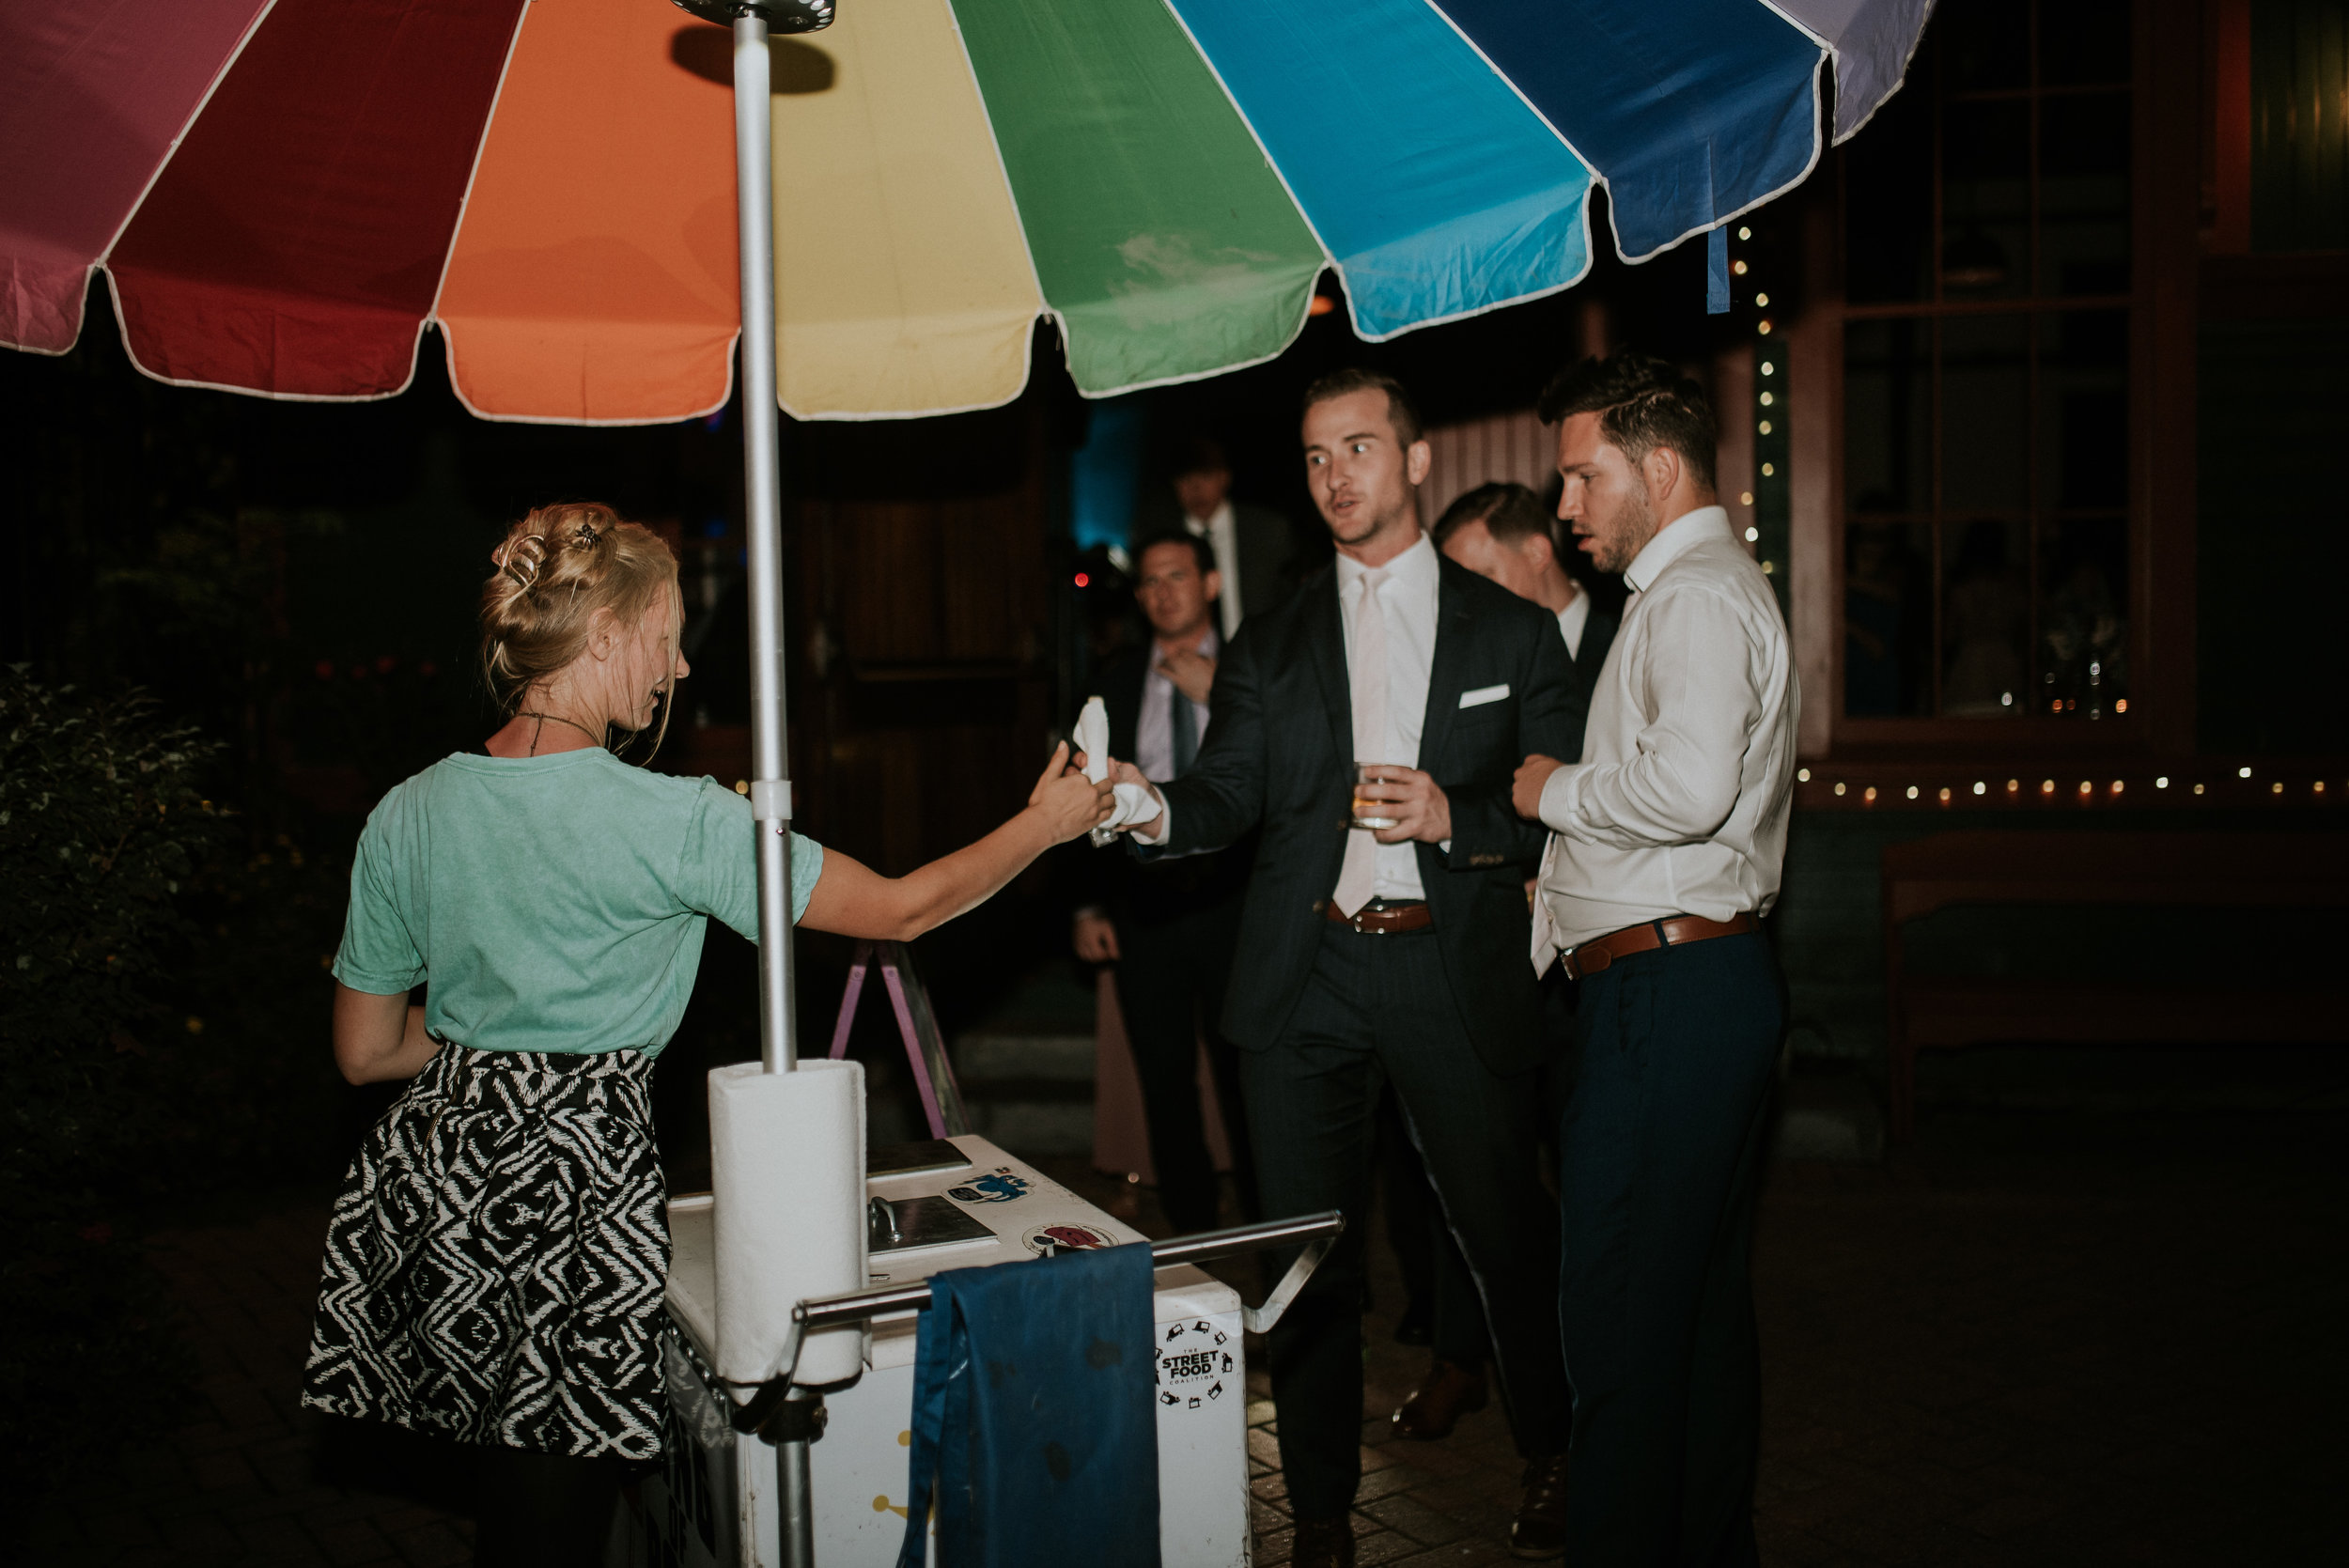 King of Pops popsicle at wedding